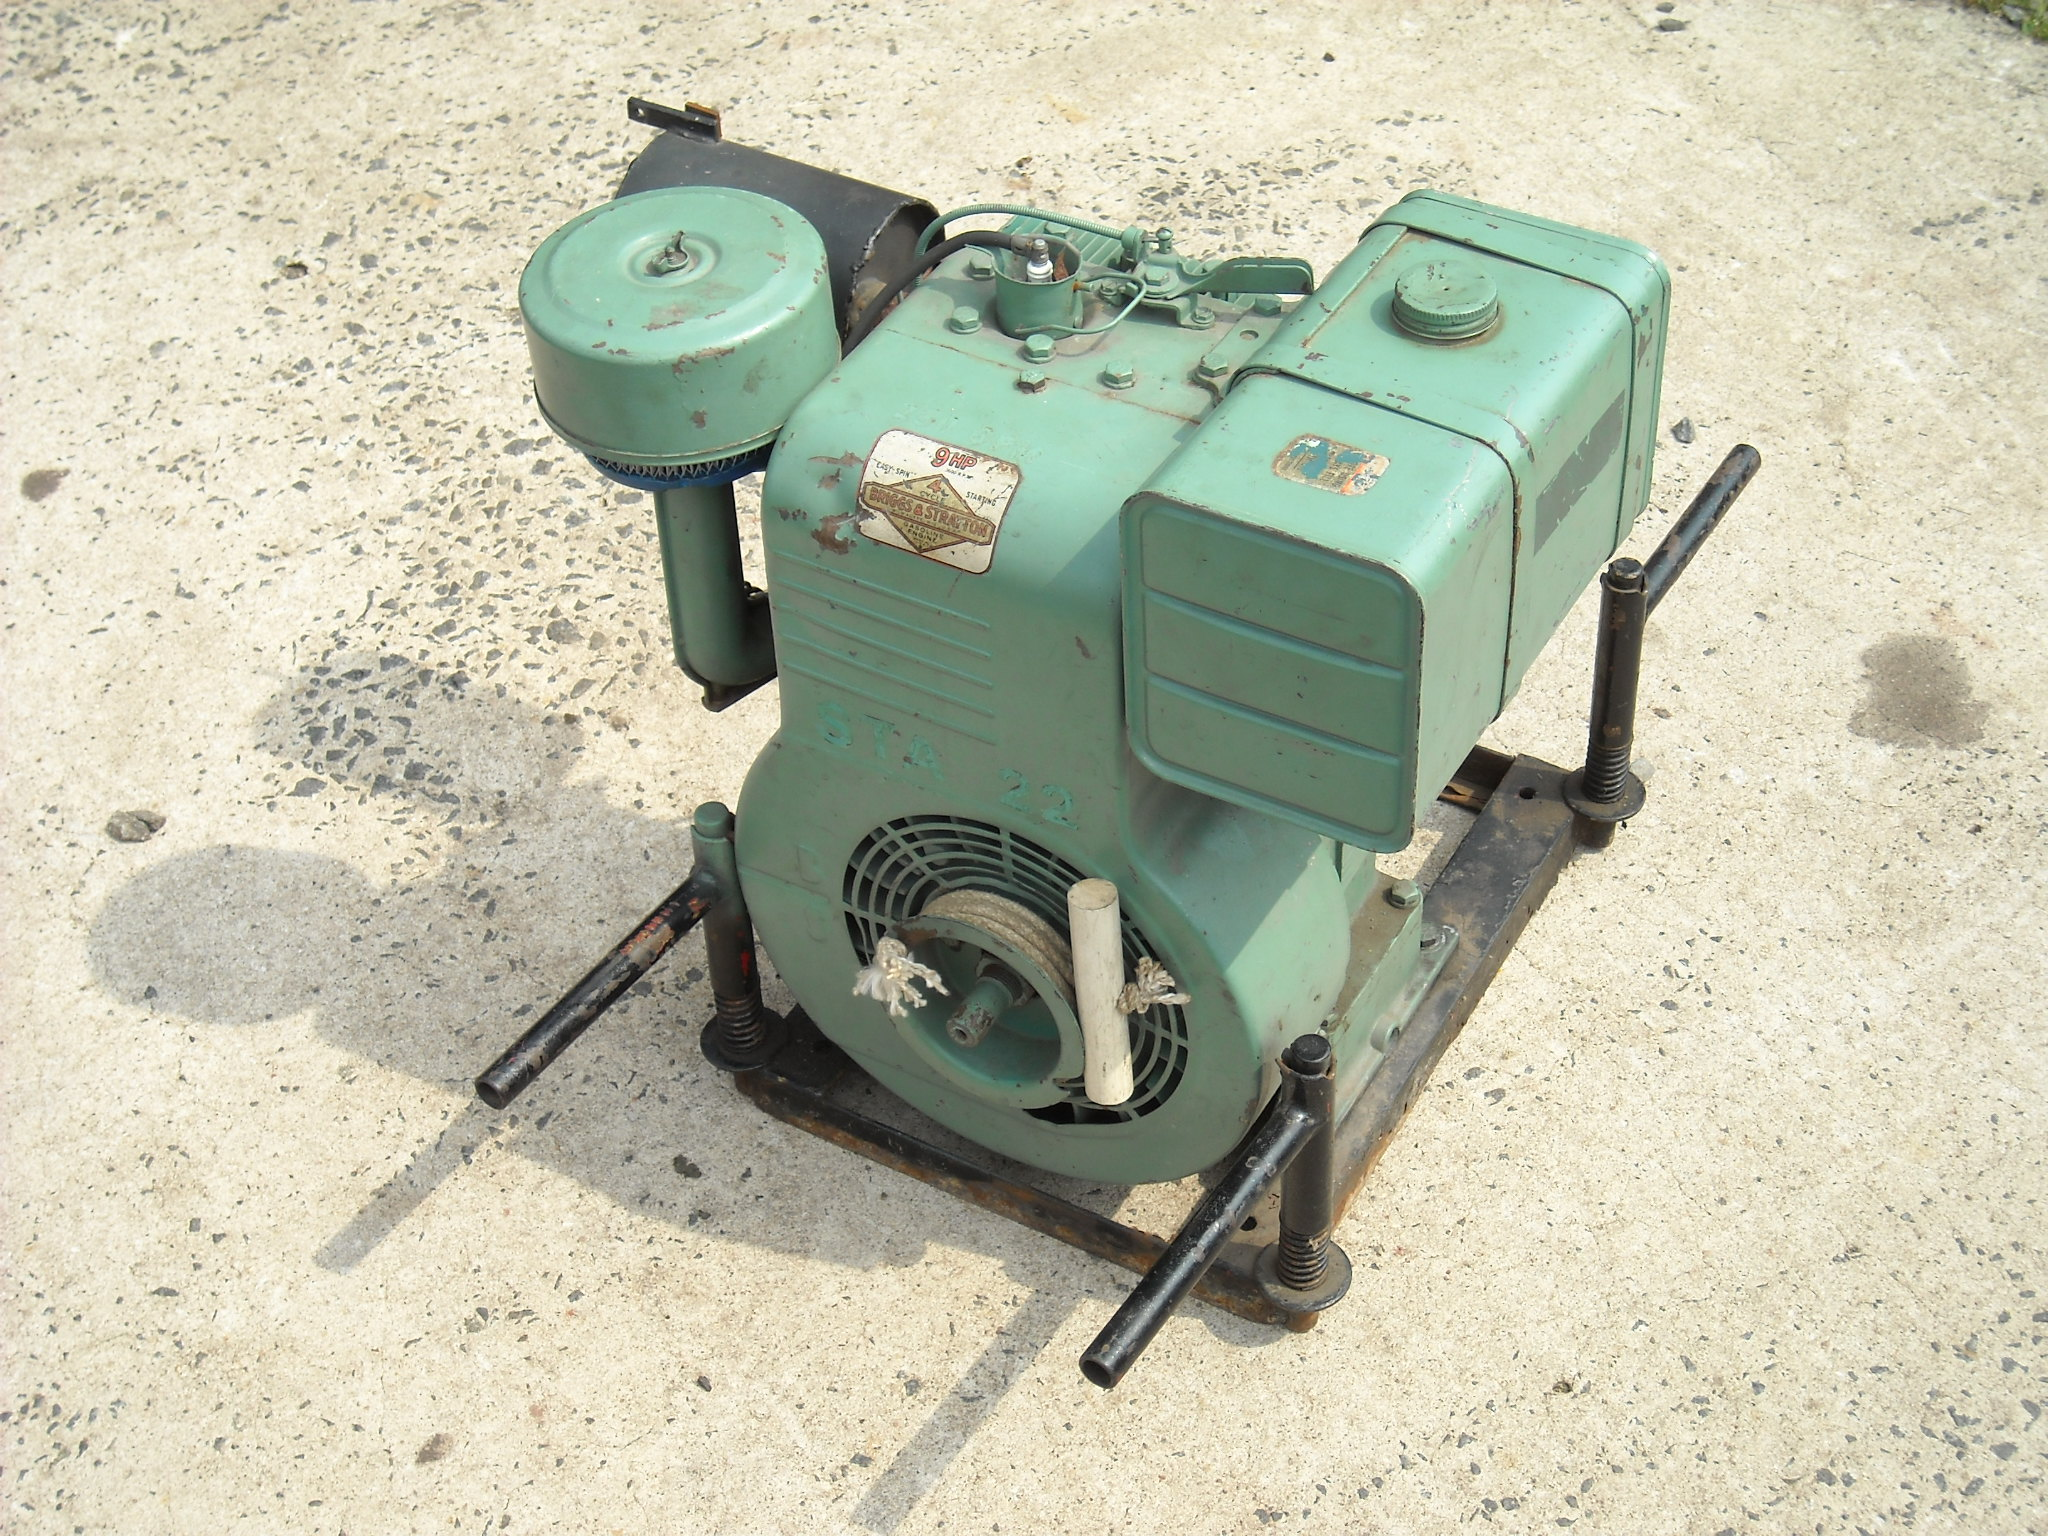 Wheel Horse Kohler Engine Rebuild further Briggs And Stratton 550 Series 158Cc besides mercial Outdoor Heaters Electric in addition Diesel Air Heater also Briggs And Stratton 16 HP Vanguard Engine. on 10 hp briggs horizontal engine where is fuel pump